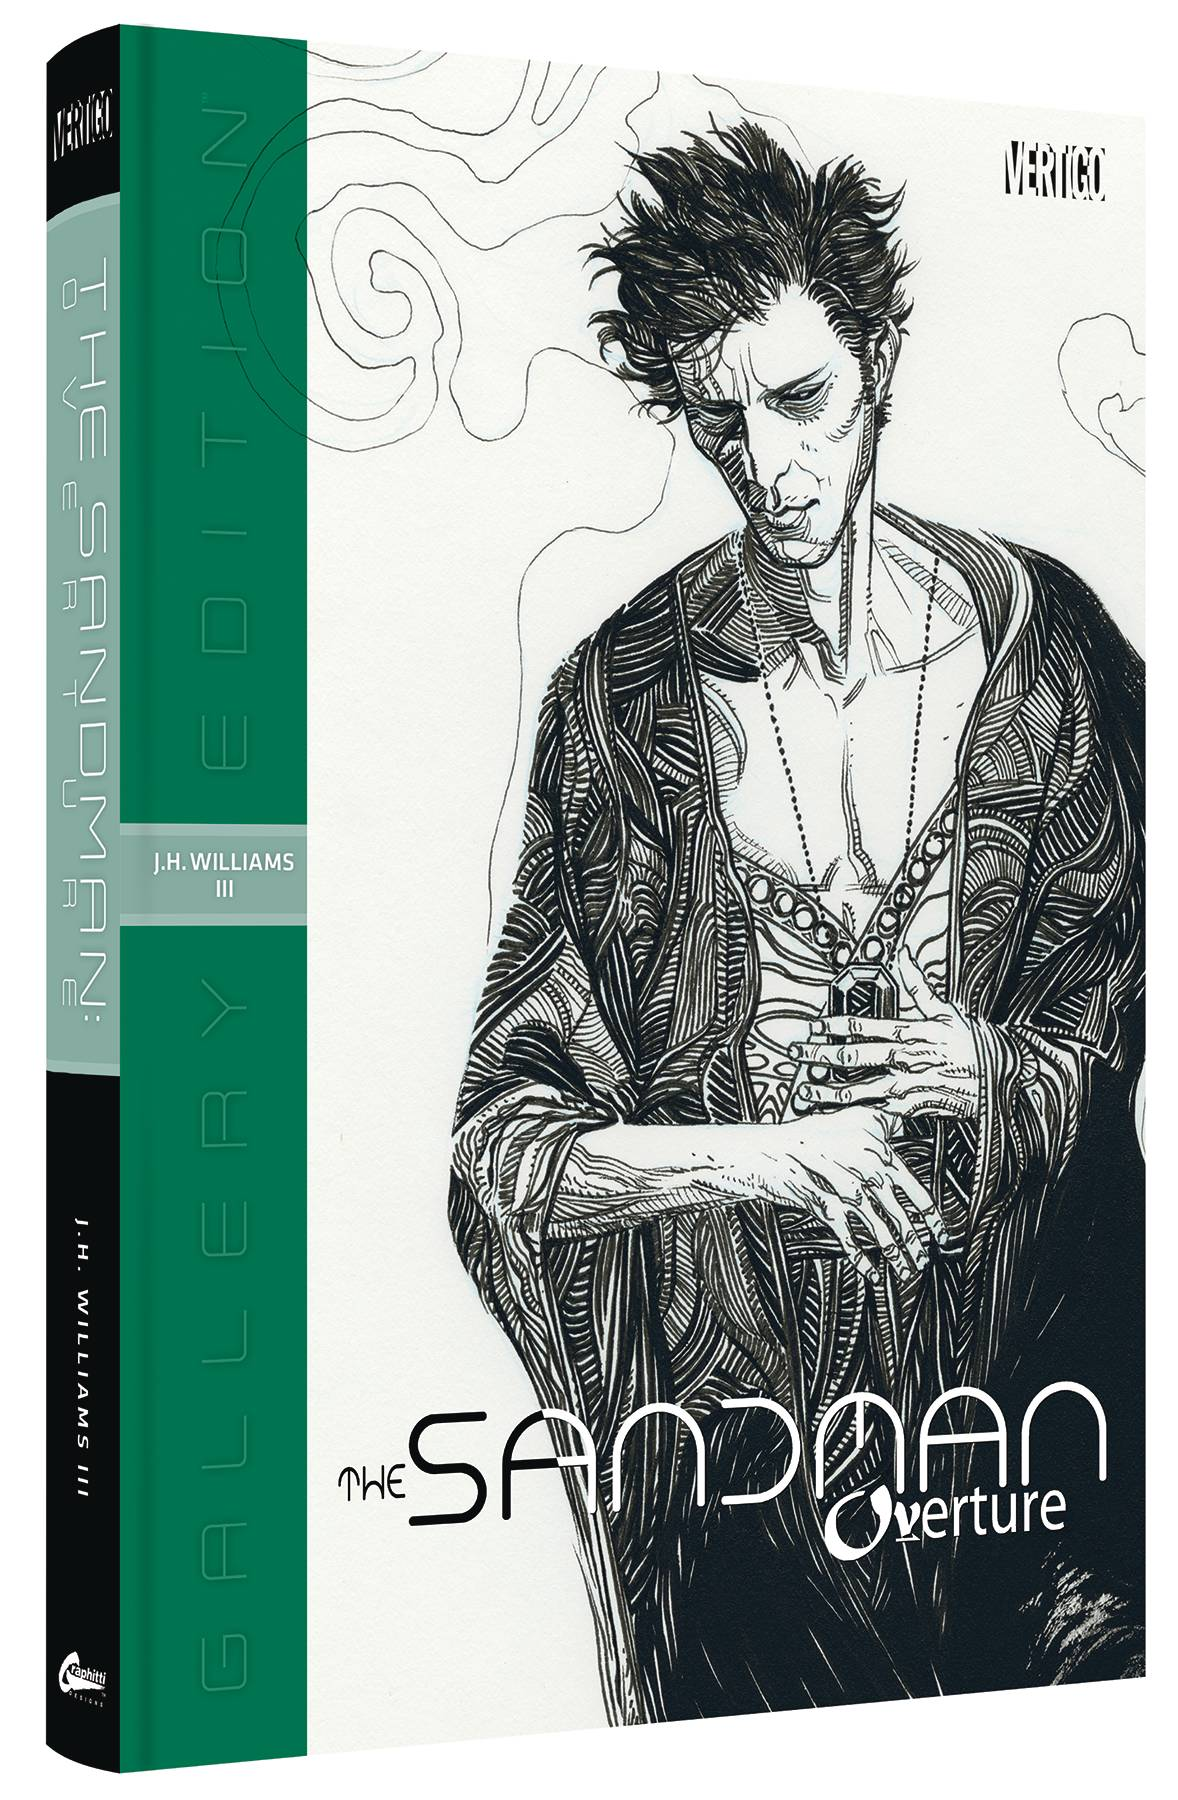 DC Comics Cancels All Orders for Sandman: Overture Gallery Edition - For Now - Bleeding Cool News And Rumors